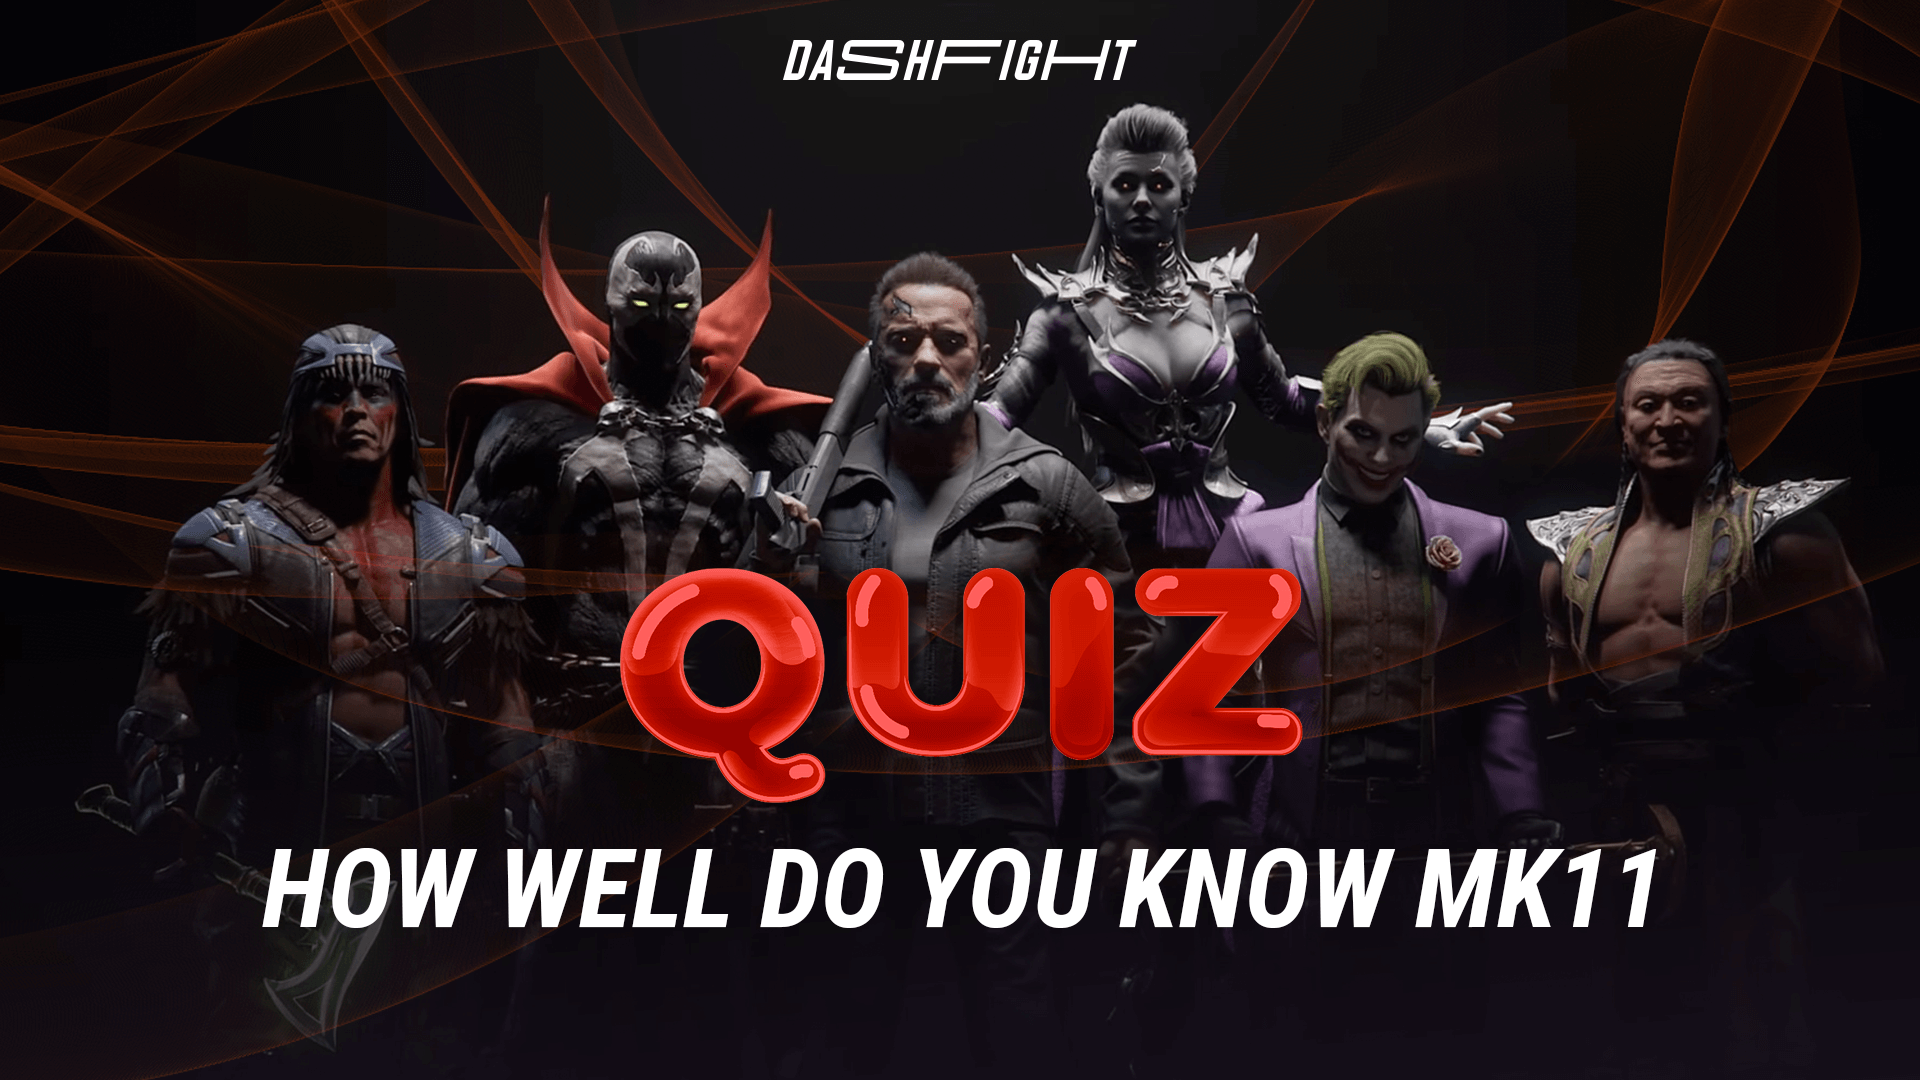 Just How Well Do you Know Mortal Kombat